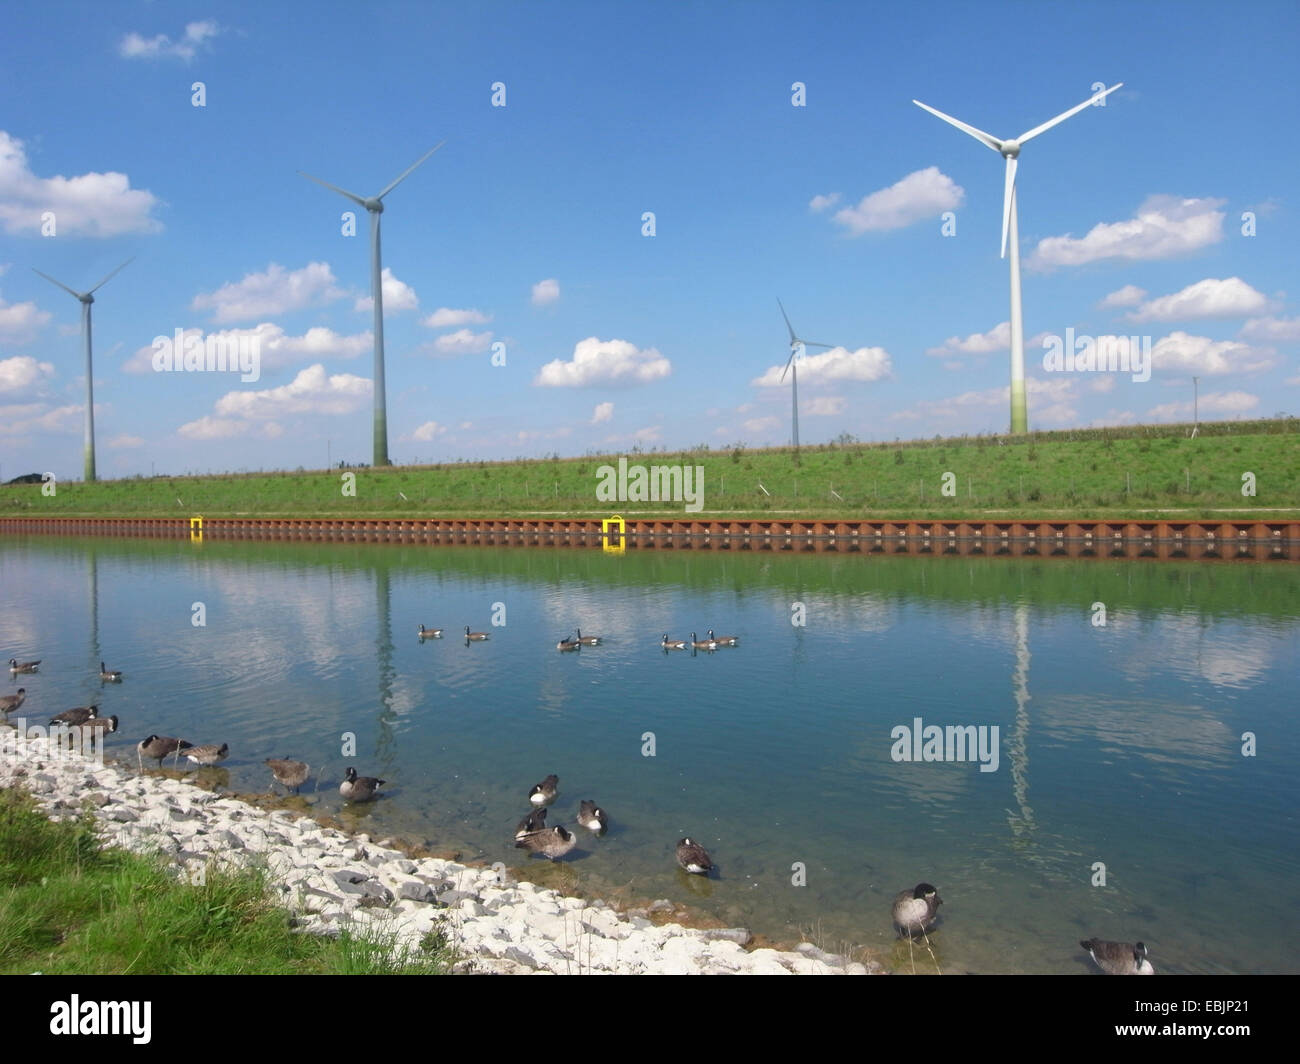 Canada goose (Branta canadensis), at Dortmund-Ems Canal with wind turbines, Germany, North Rhine-Westphalia, Ruhr - Stock Image